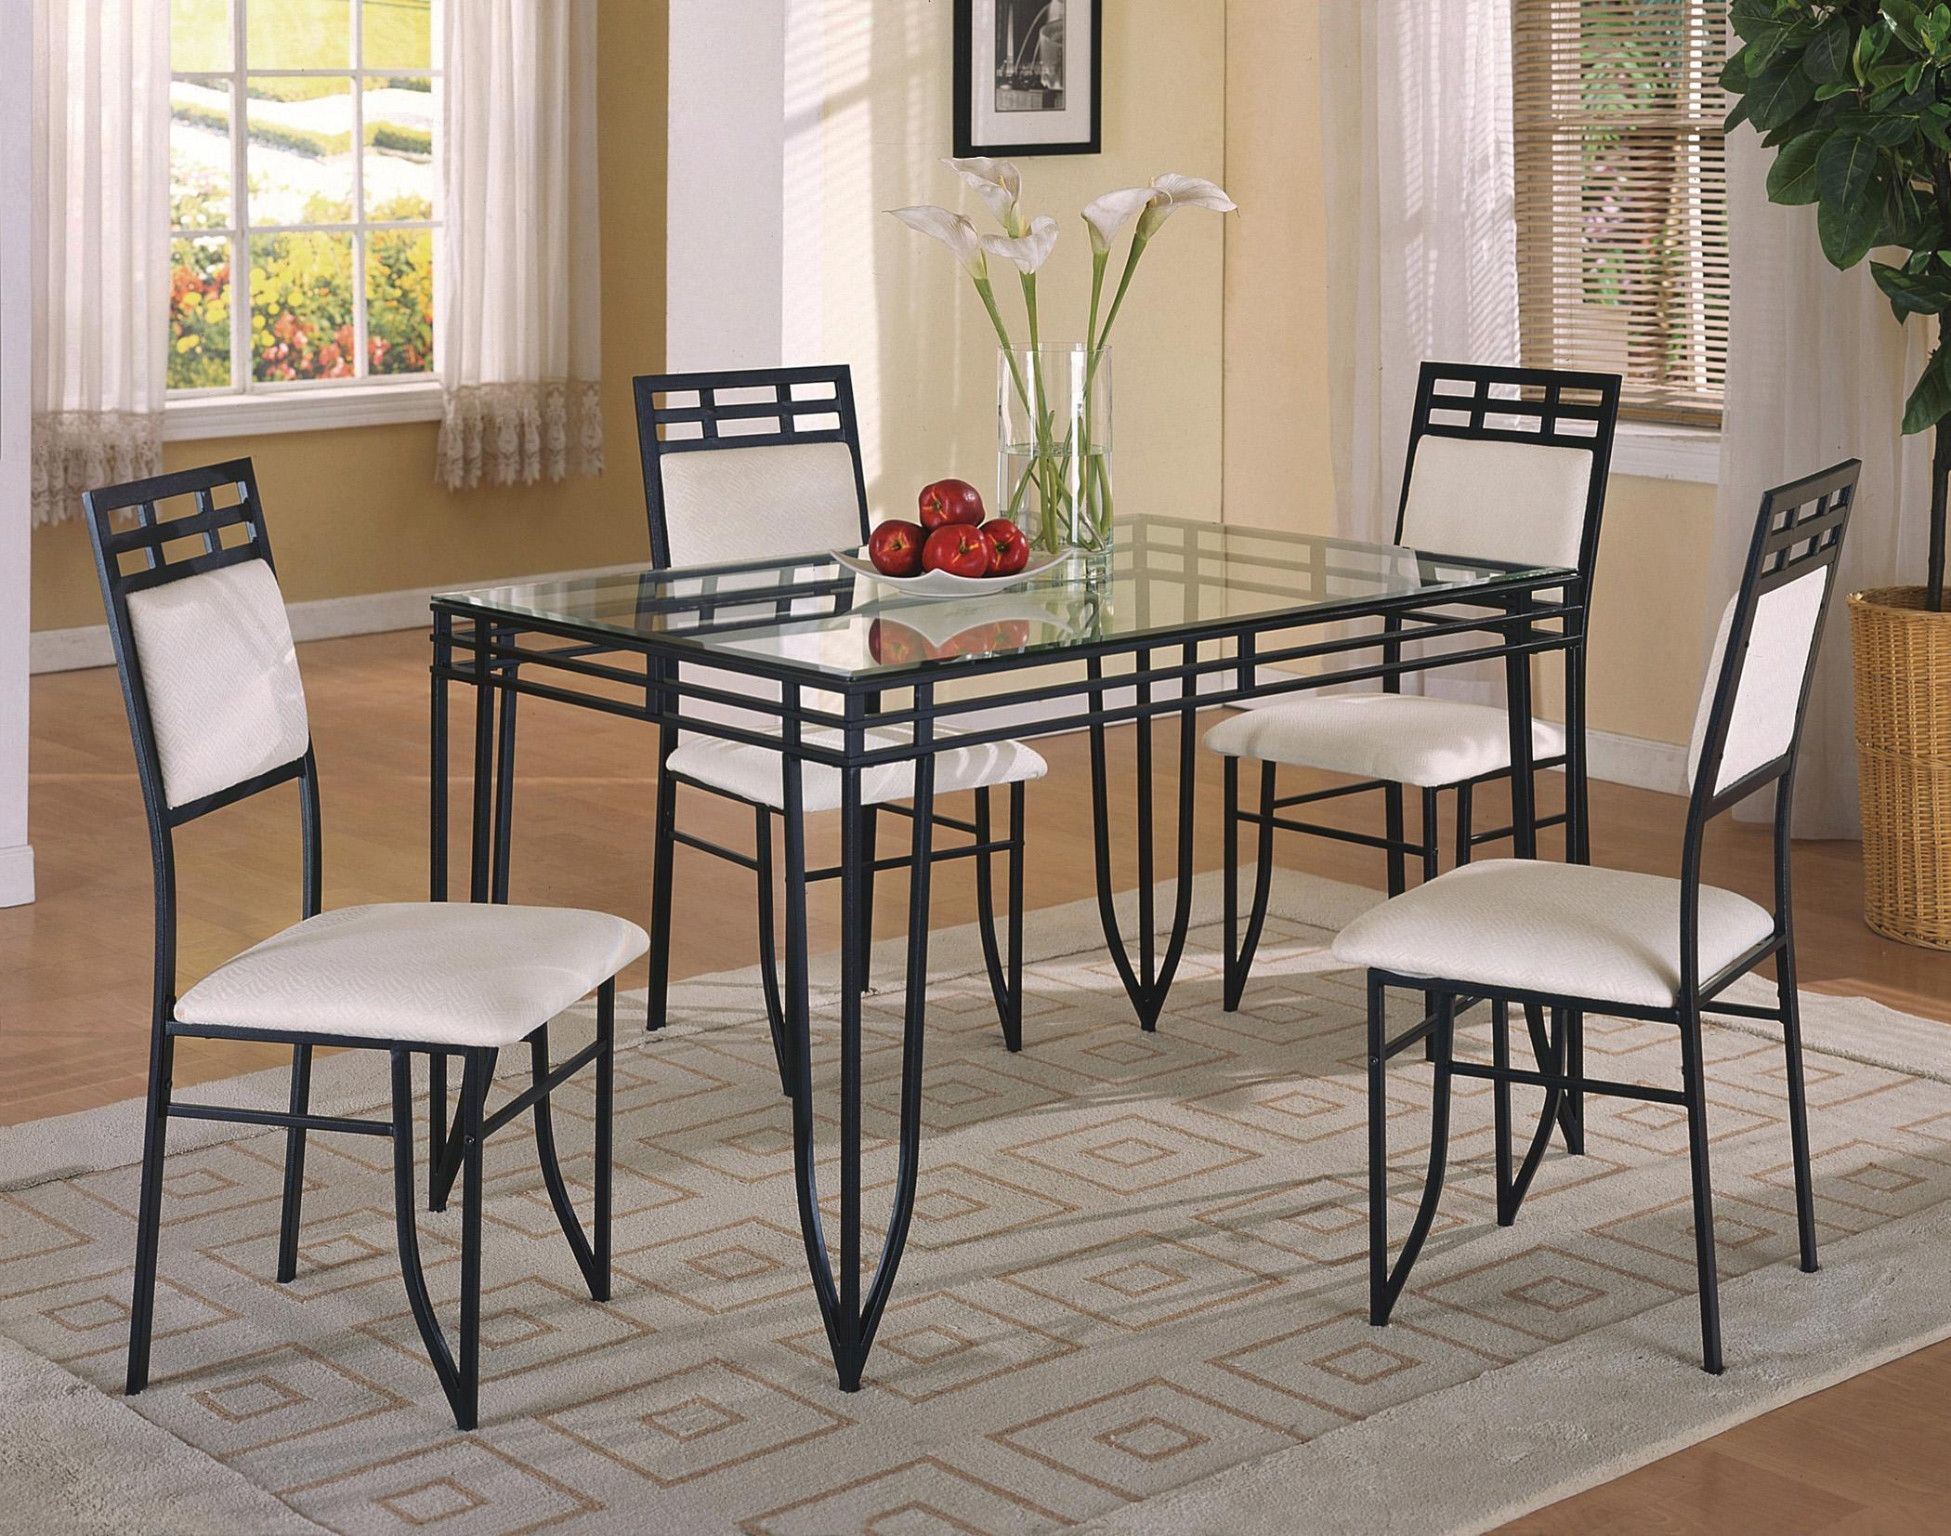 Matrix 5 Piece Dinette Table And 4 Chairs 299 00 Gl Top 32 X 48 30 H 8mm Bevel 1116set Chair 17 19 3 37 C M